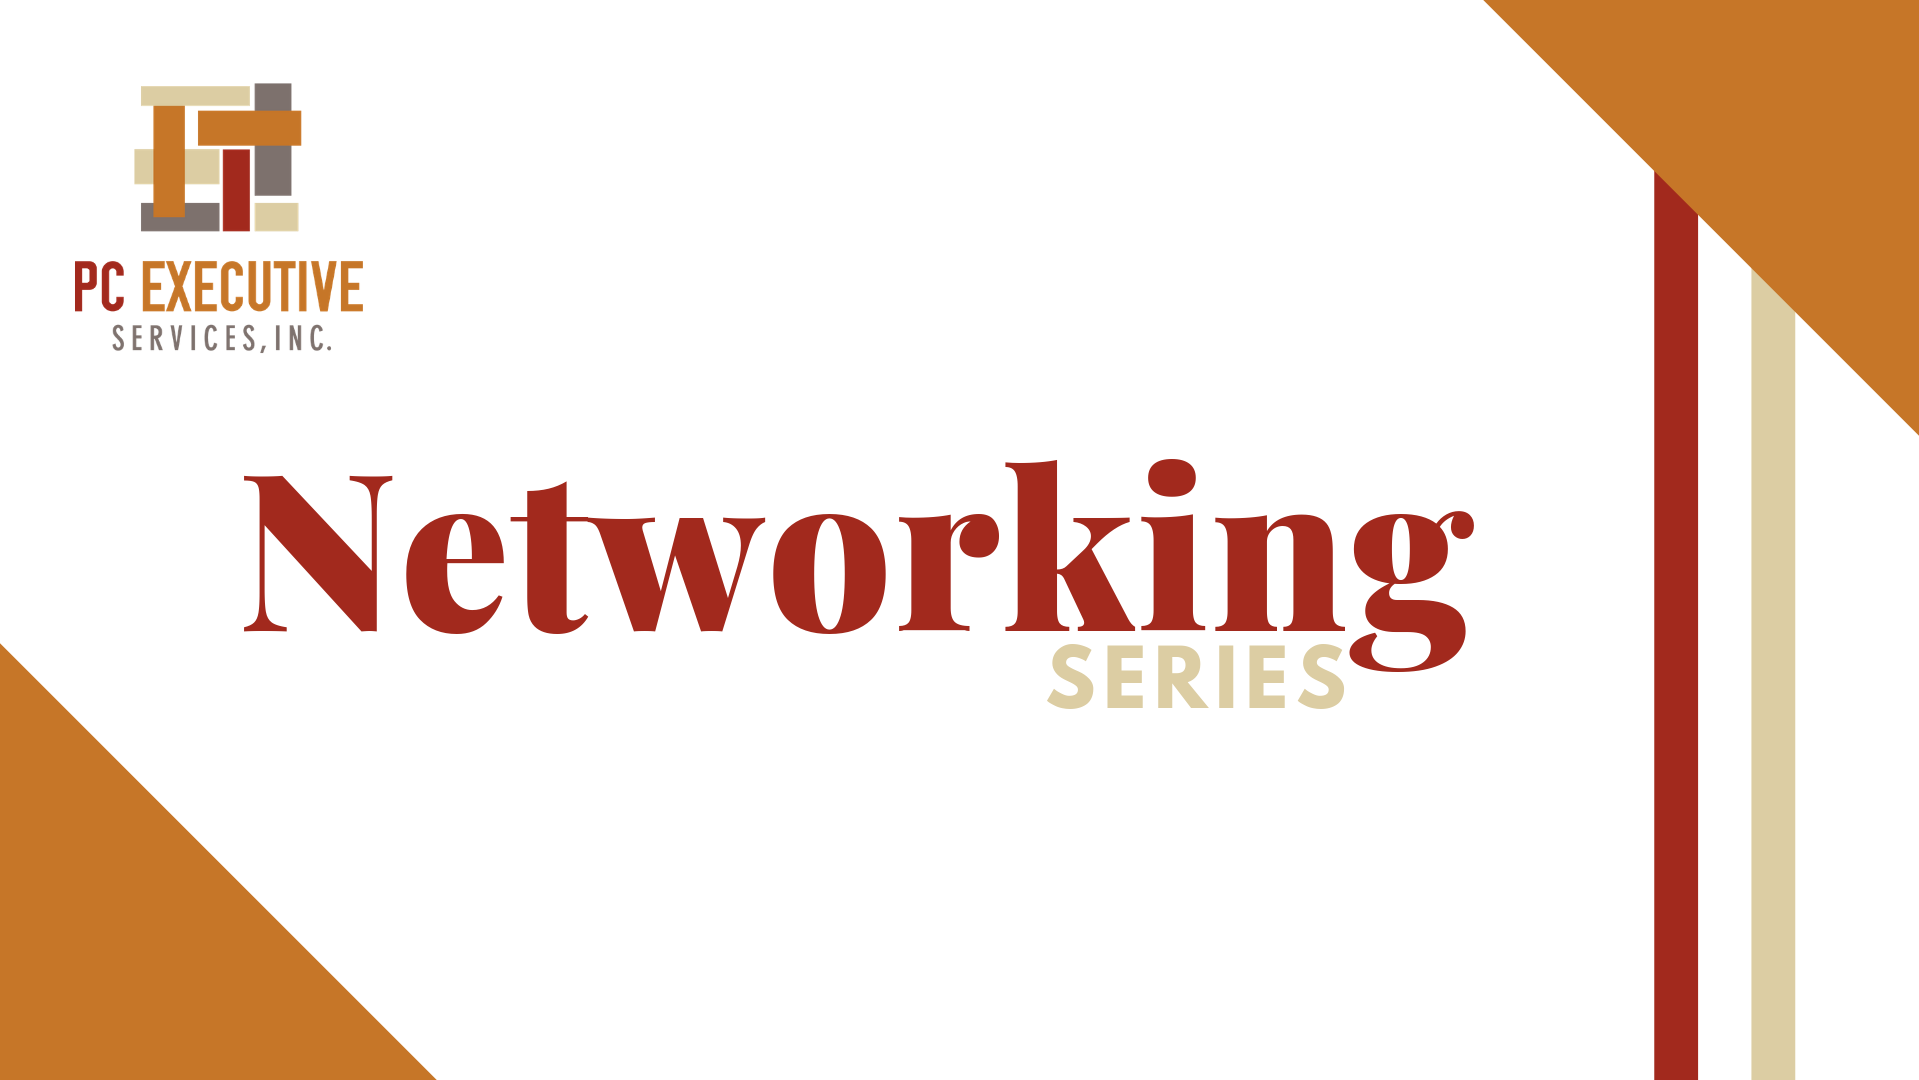 PC Executive Services Networking Series